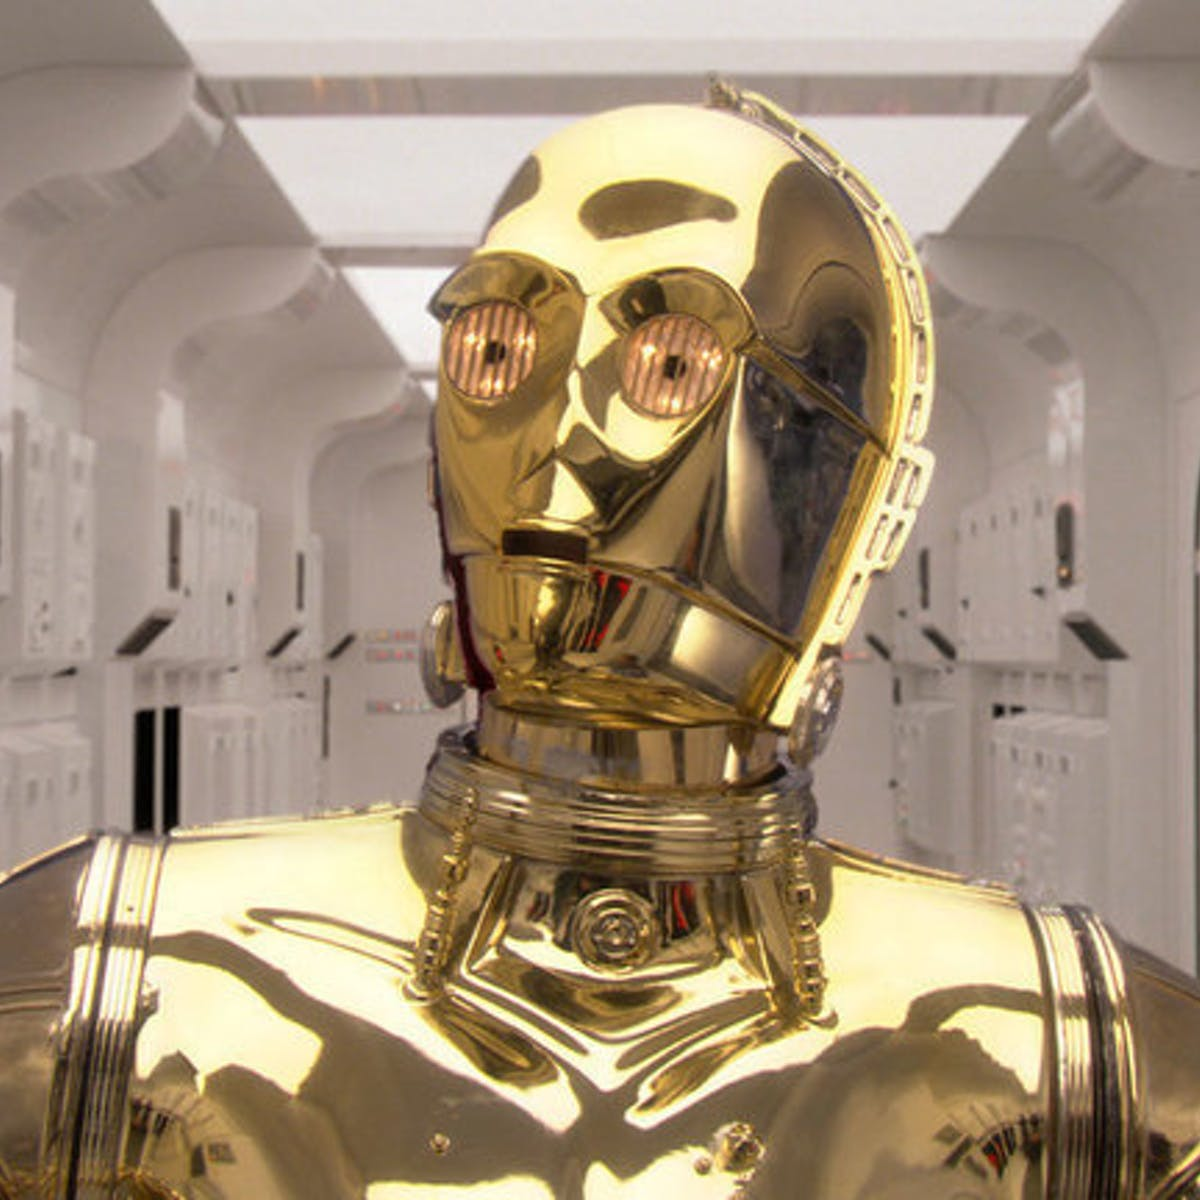 'Star Wars 9' spoilers: New photo may explain mystery of C-3PO's red eyes